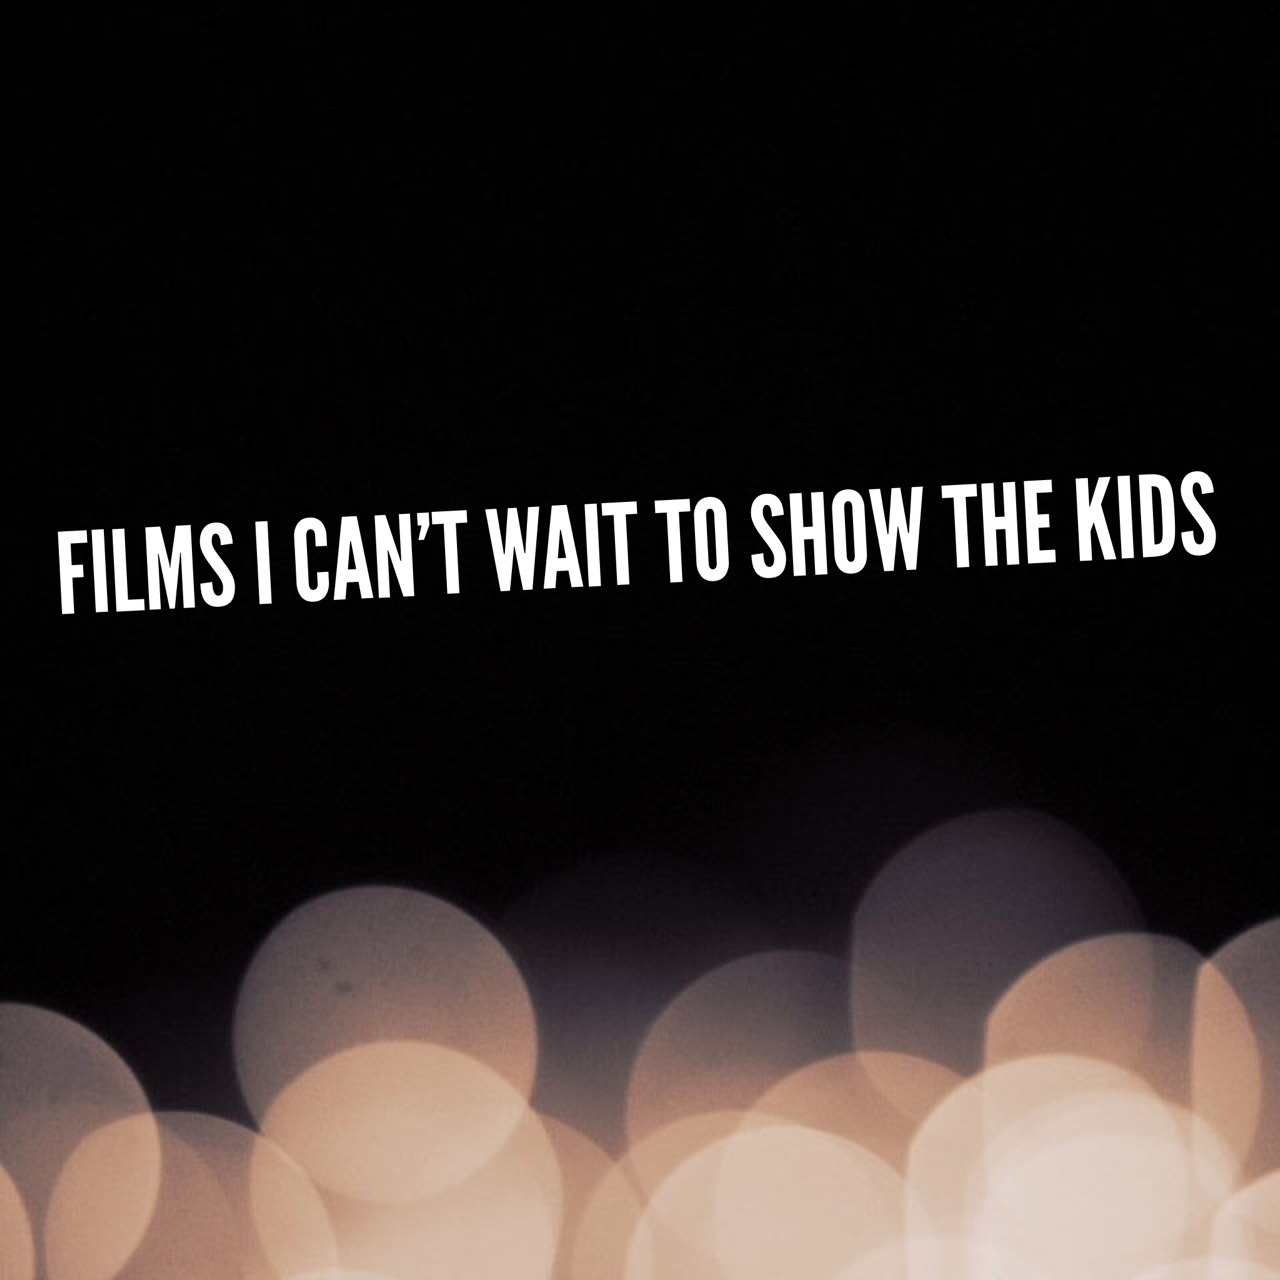 Films I can't wait to show the kids